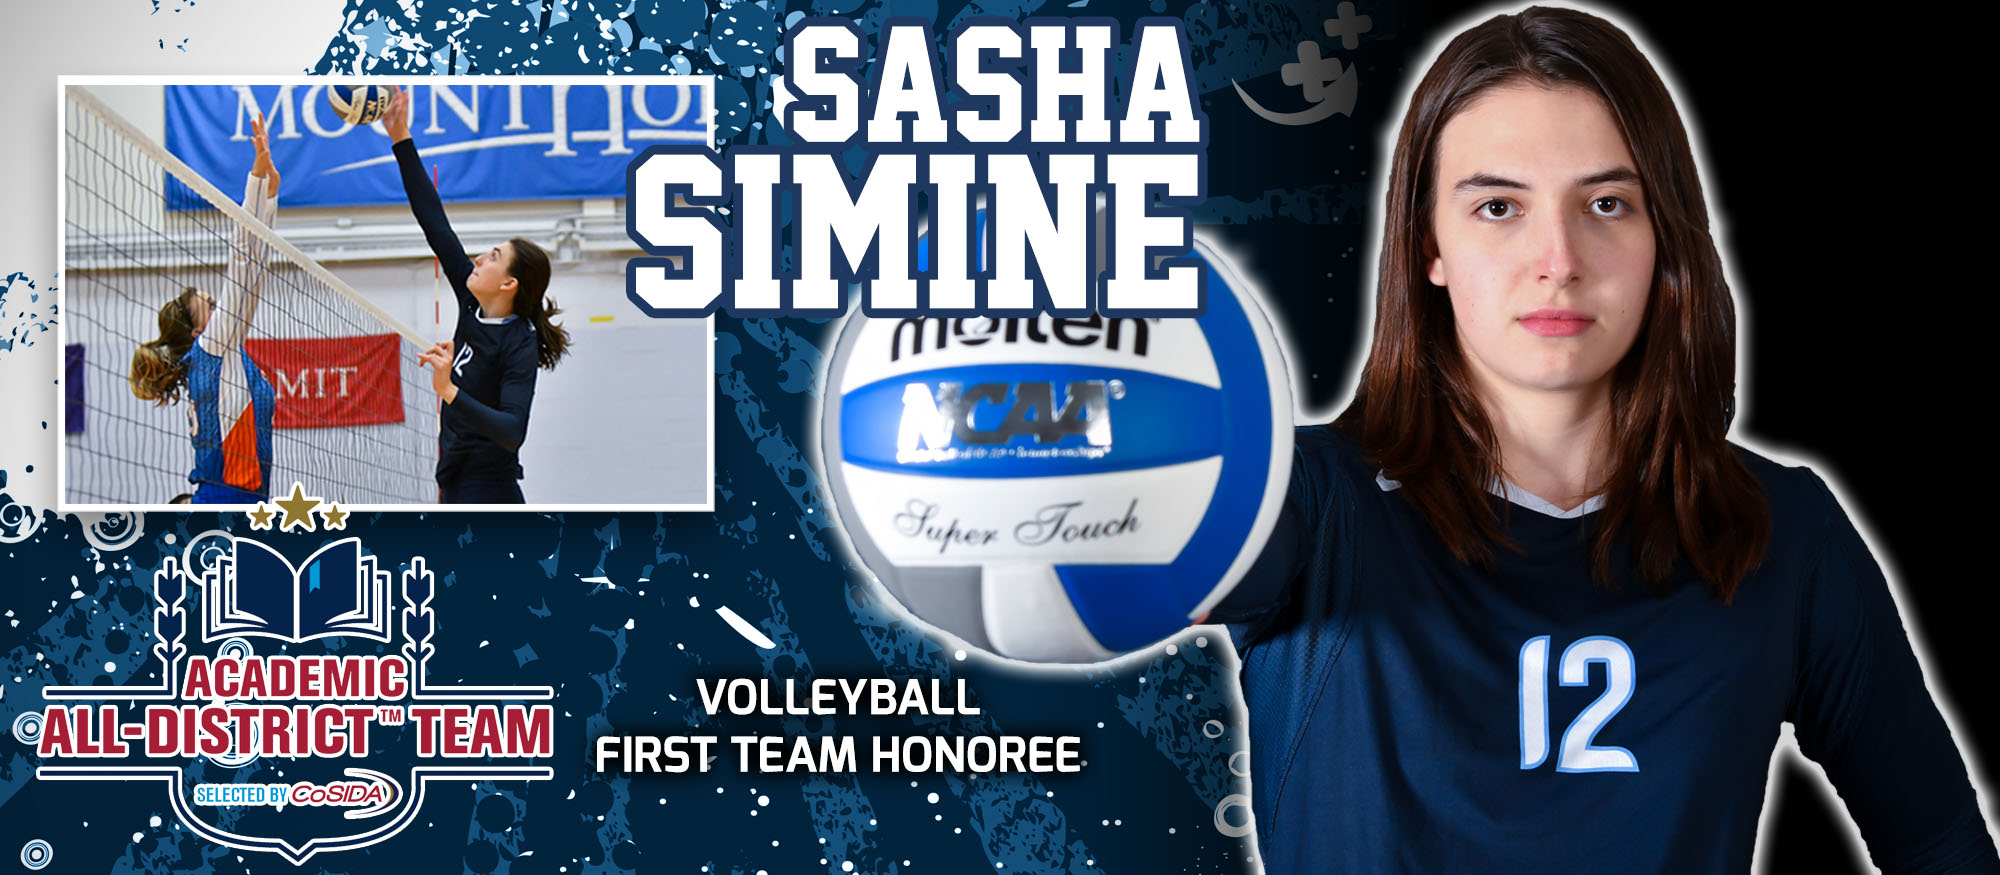 Graphic showcasing sophomore volleyball player, Sasha Simine, who was named to the CoSIDA Academic All-District First Team in volleyball on November 16.